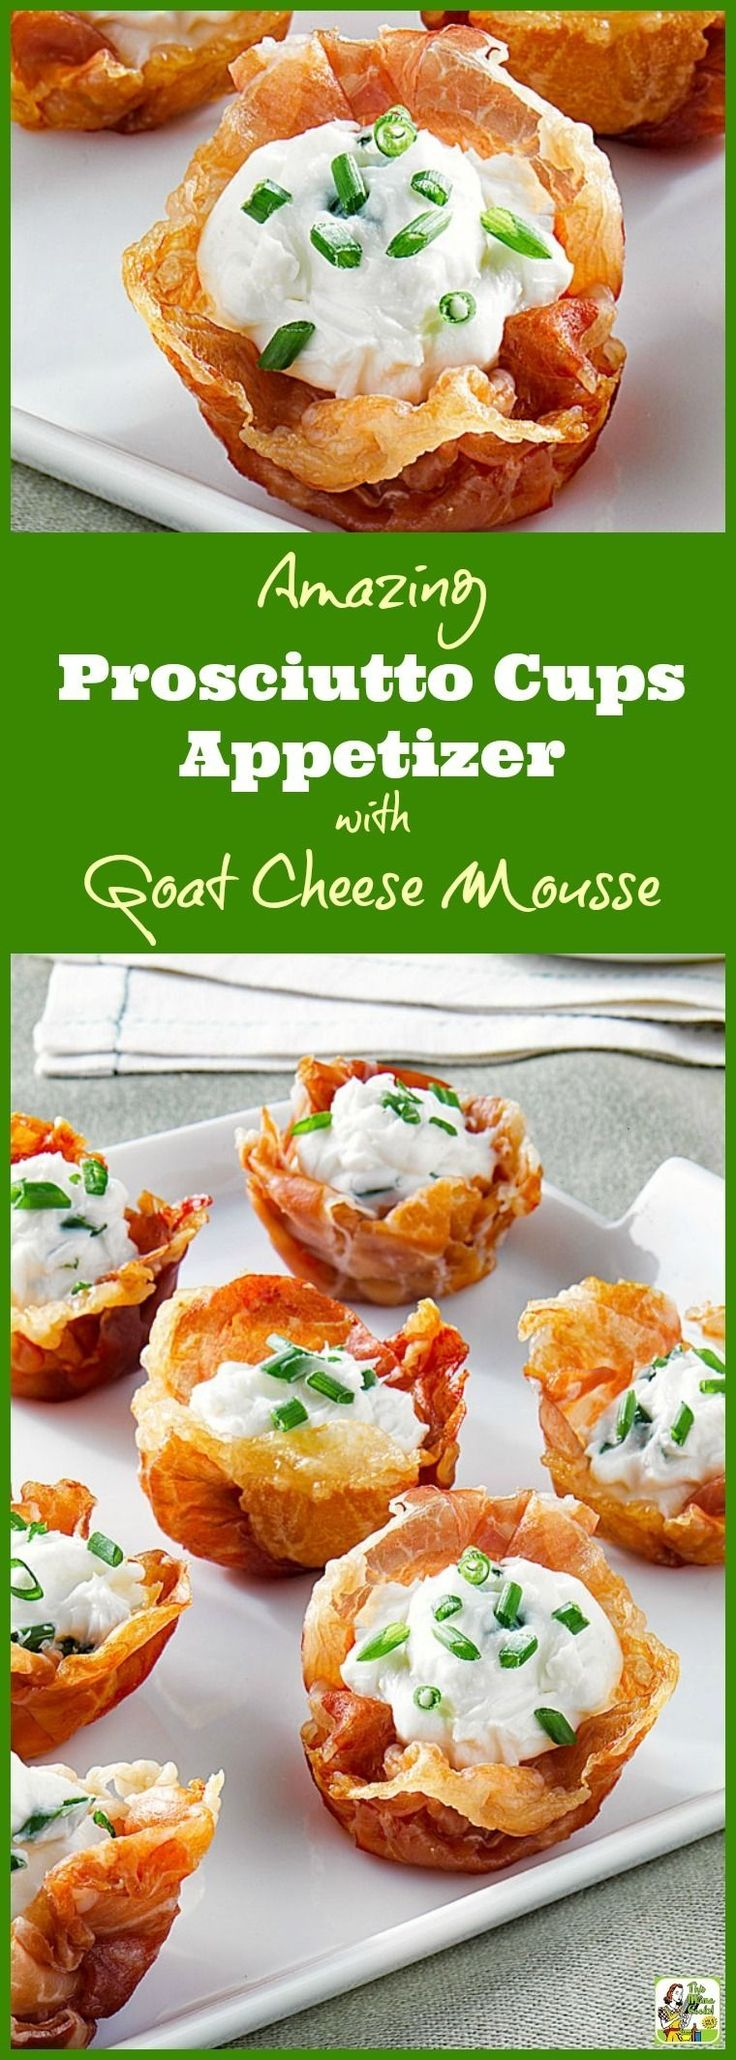 Try this Amazing Prosciutto Cups Appetizer with Goat Cheese Mousse at your party. Click to get this easy goat cheese appetizer recipe. This appetizer is gluten free since it uses prosciutto to form the cups, not pastry or phyllo dough.